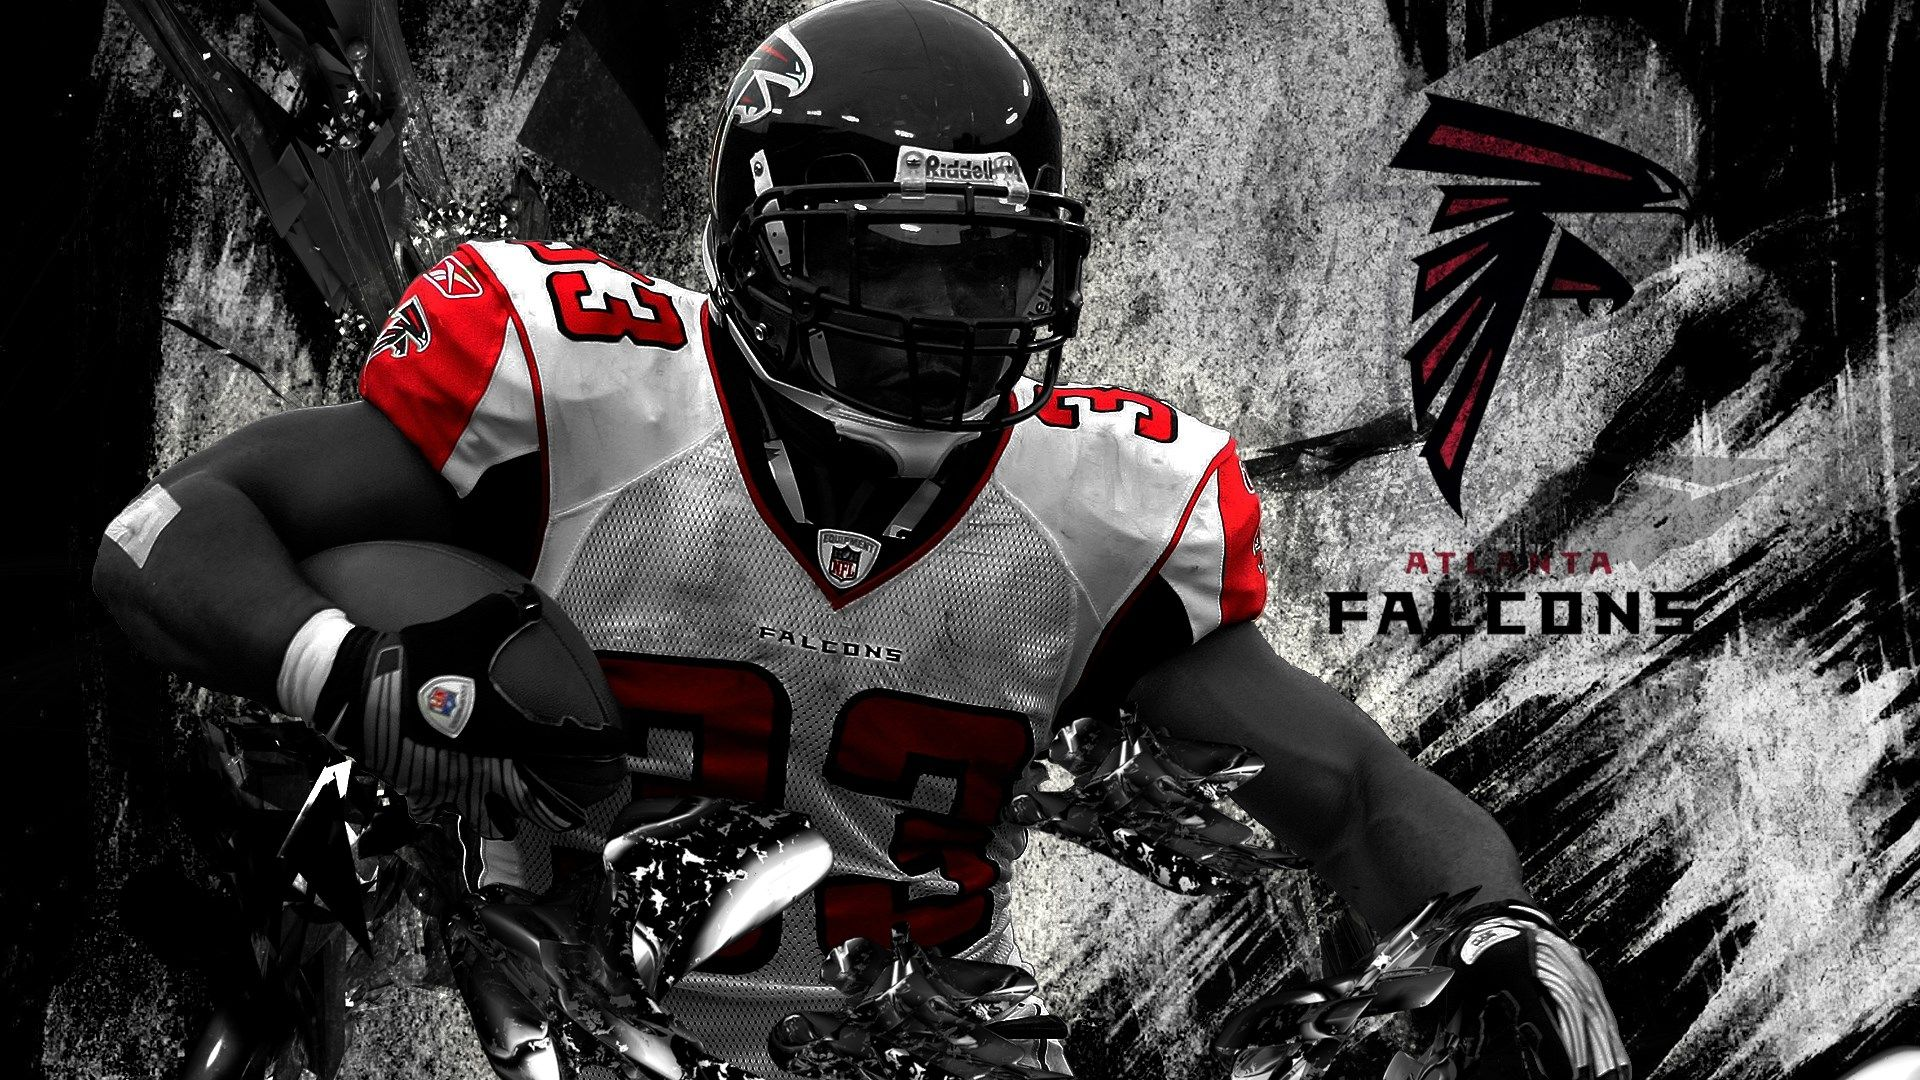 atlanta falcons wallpapers hd Nfl football wallpaper